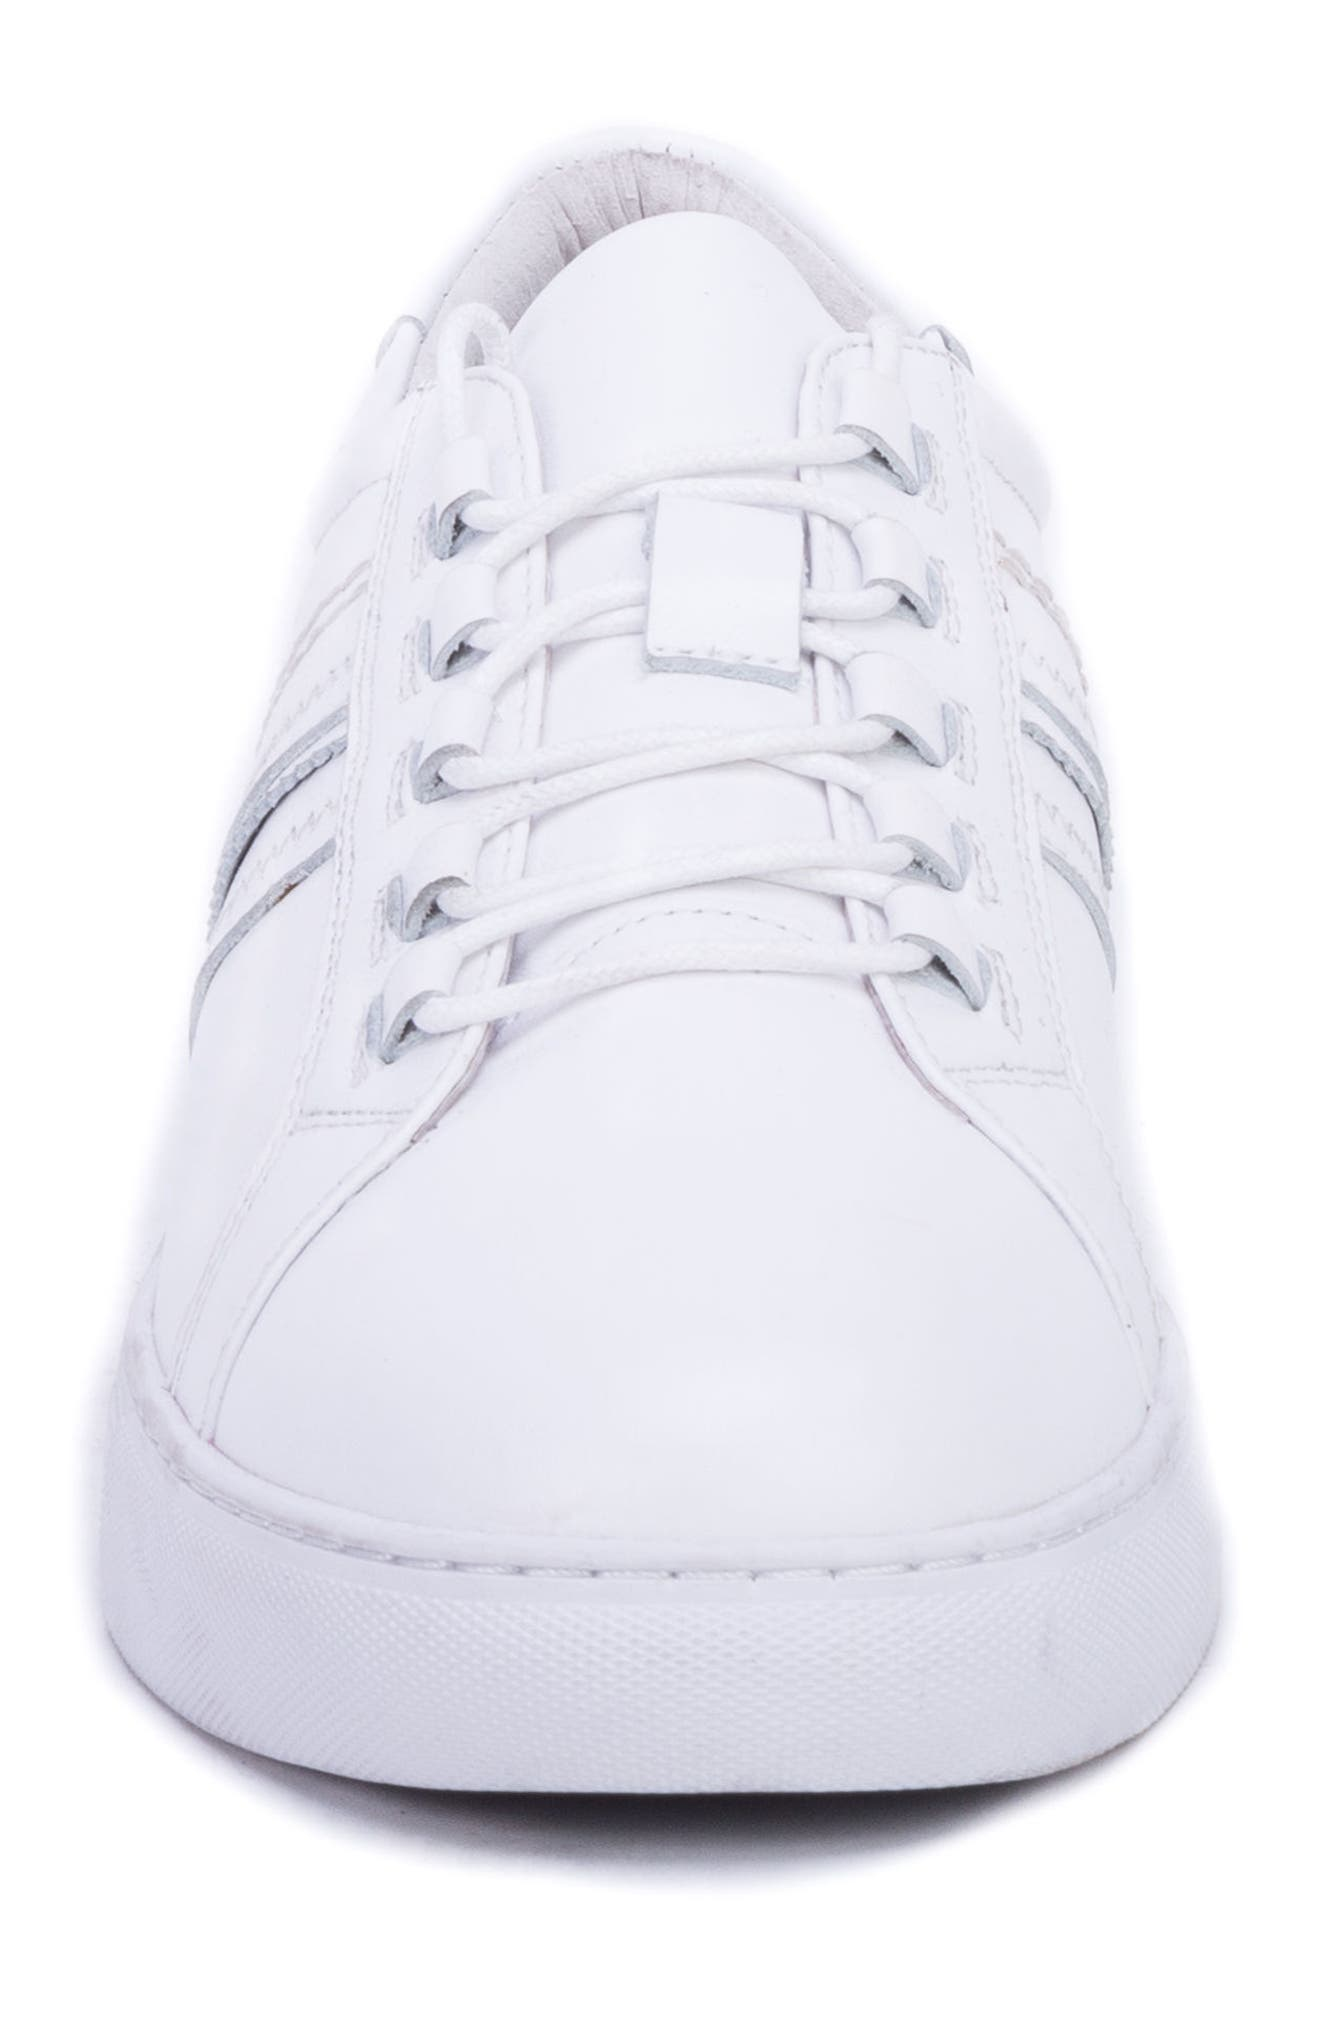 Horton Studded Low Top Sneaker,                             Alternate thumbnail 4, color,                             WHITE LEATHER